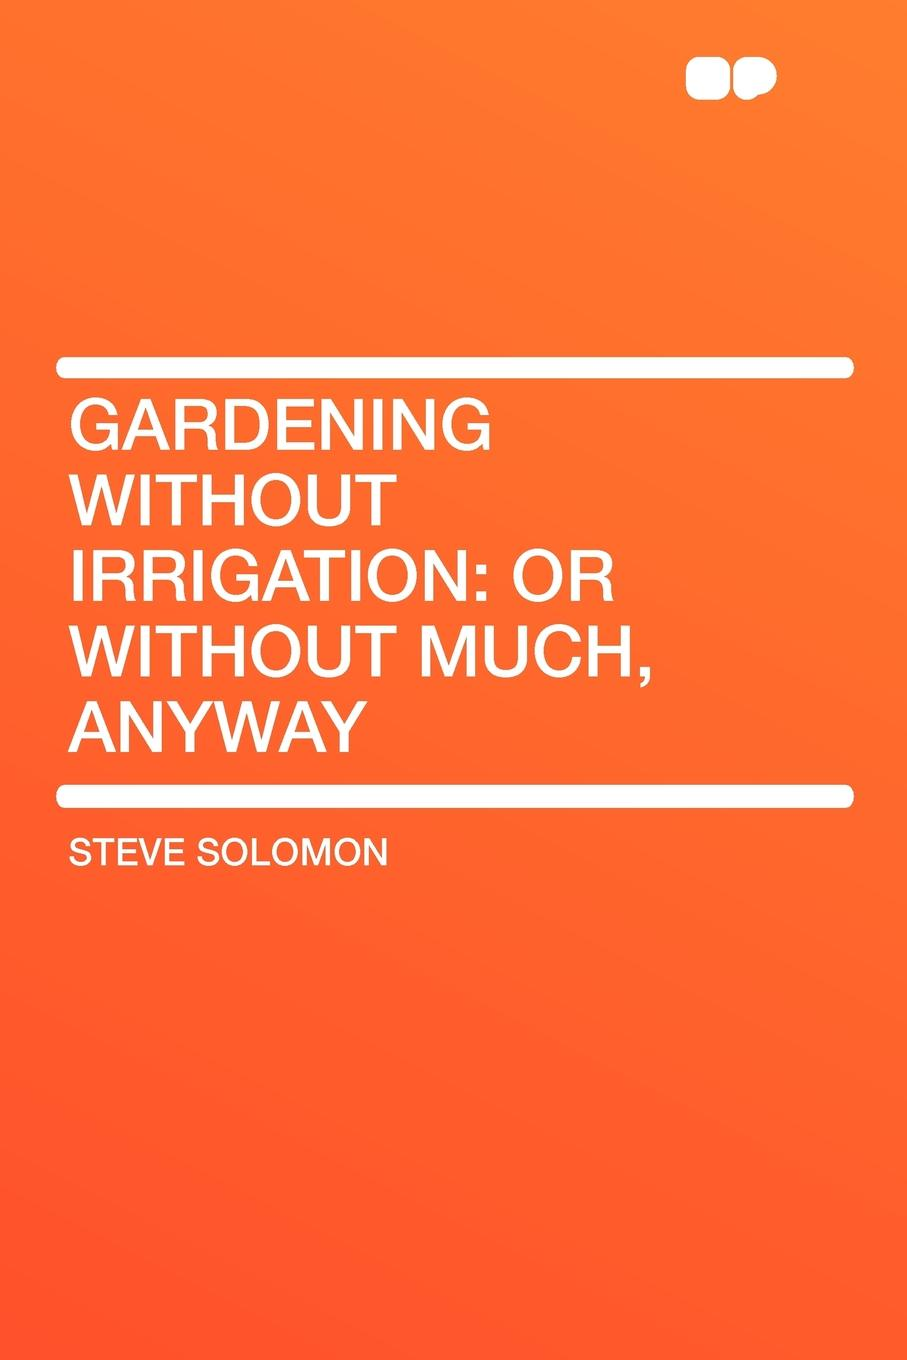 Steve Solomon Gardening Without Irrigation. or without much, anyway anyway